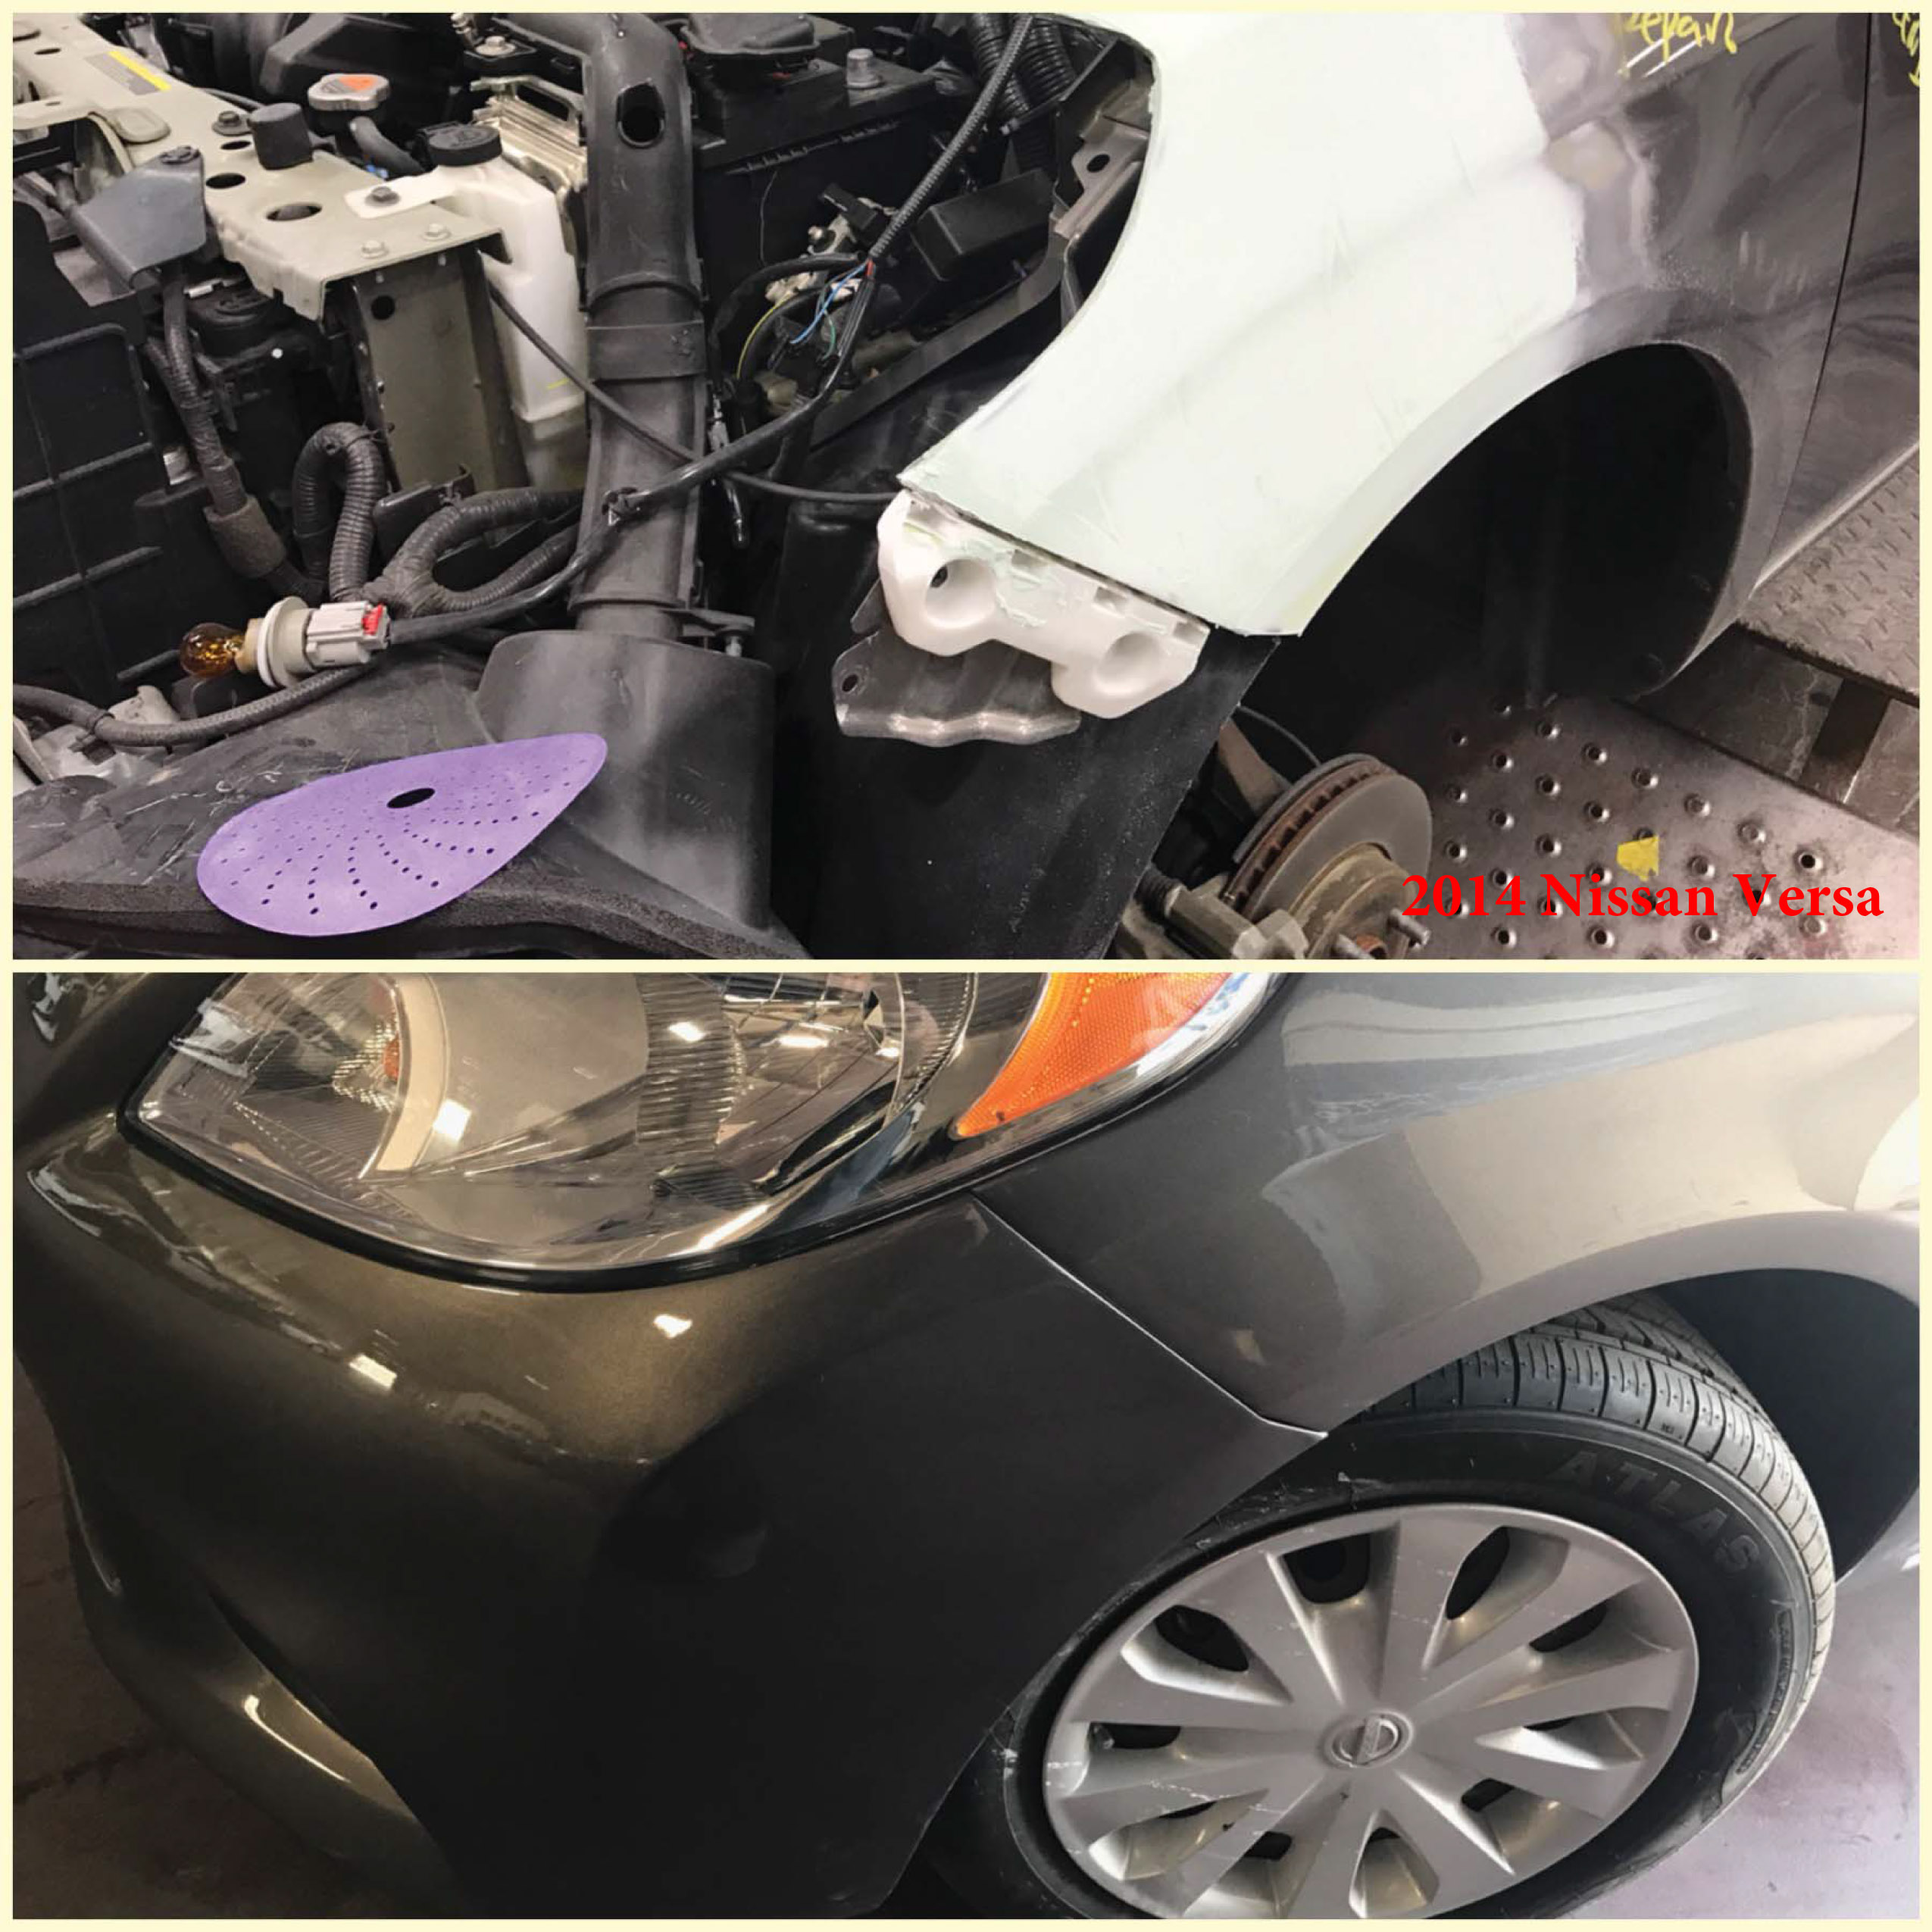 Nissan Versa Repair Paint Job RideShare Program